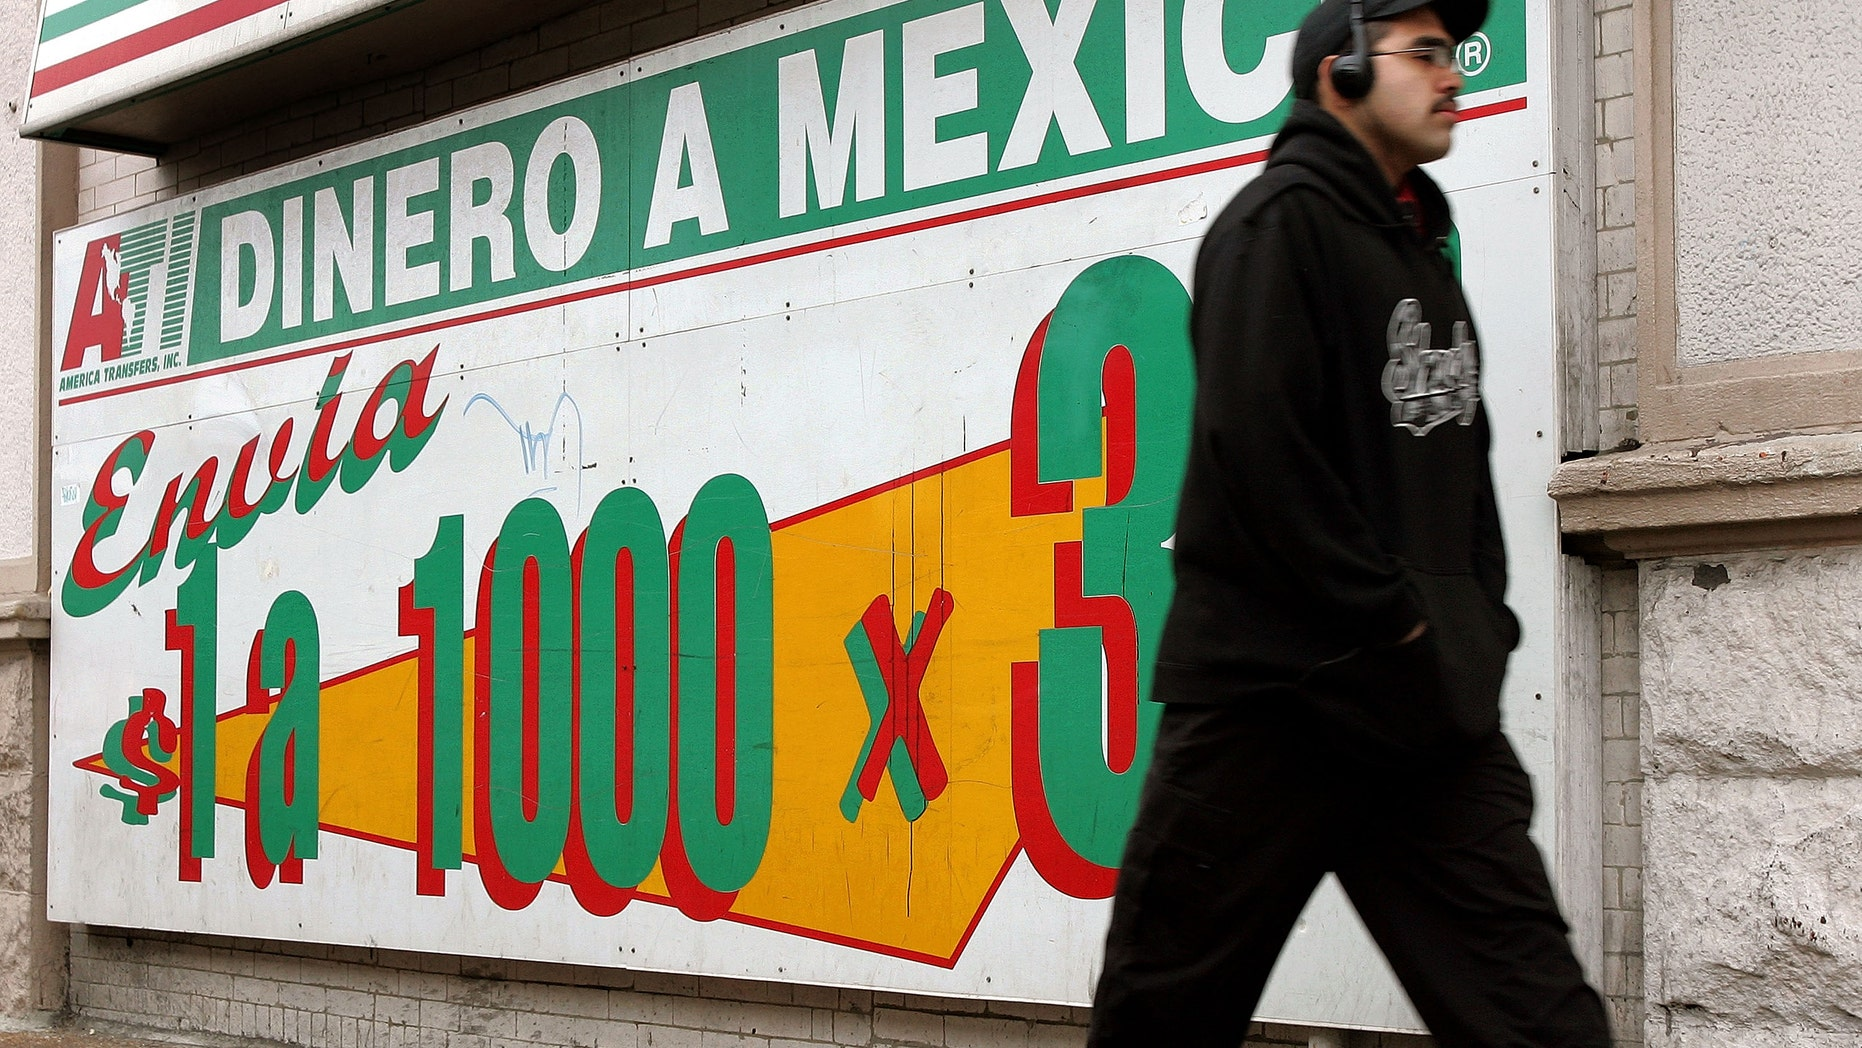 A man walks past an a sign outside a a Mexican currency exchange November 29, 2005 in Chicago, Illinois. Hispanics have become a growing force in the U.S economy and politics. (Photo by Tim Boyle/Getty Images)